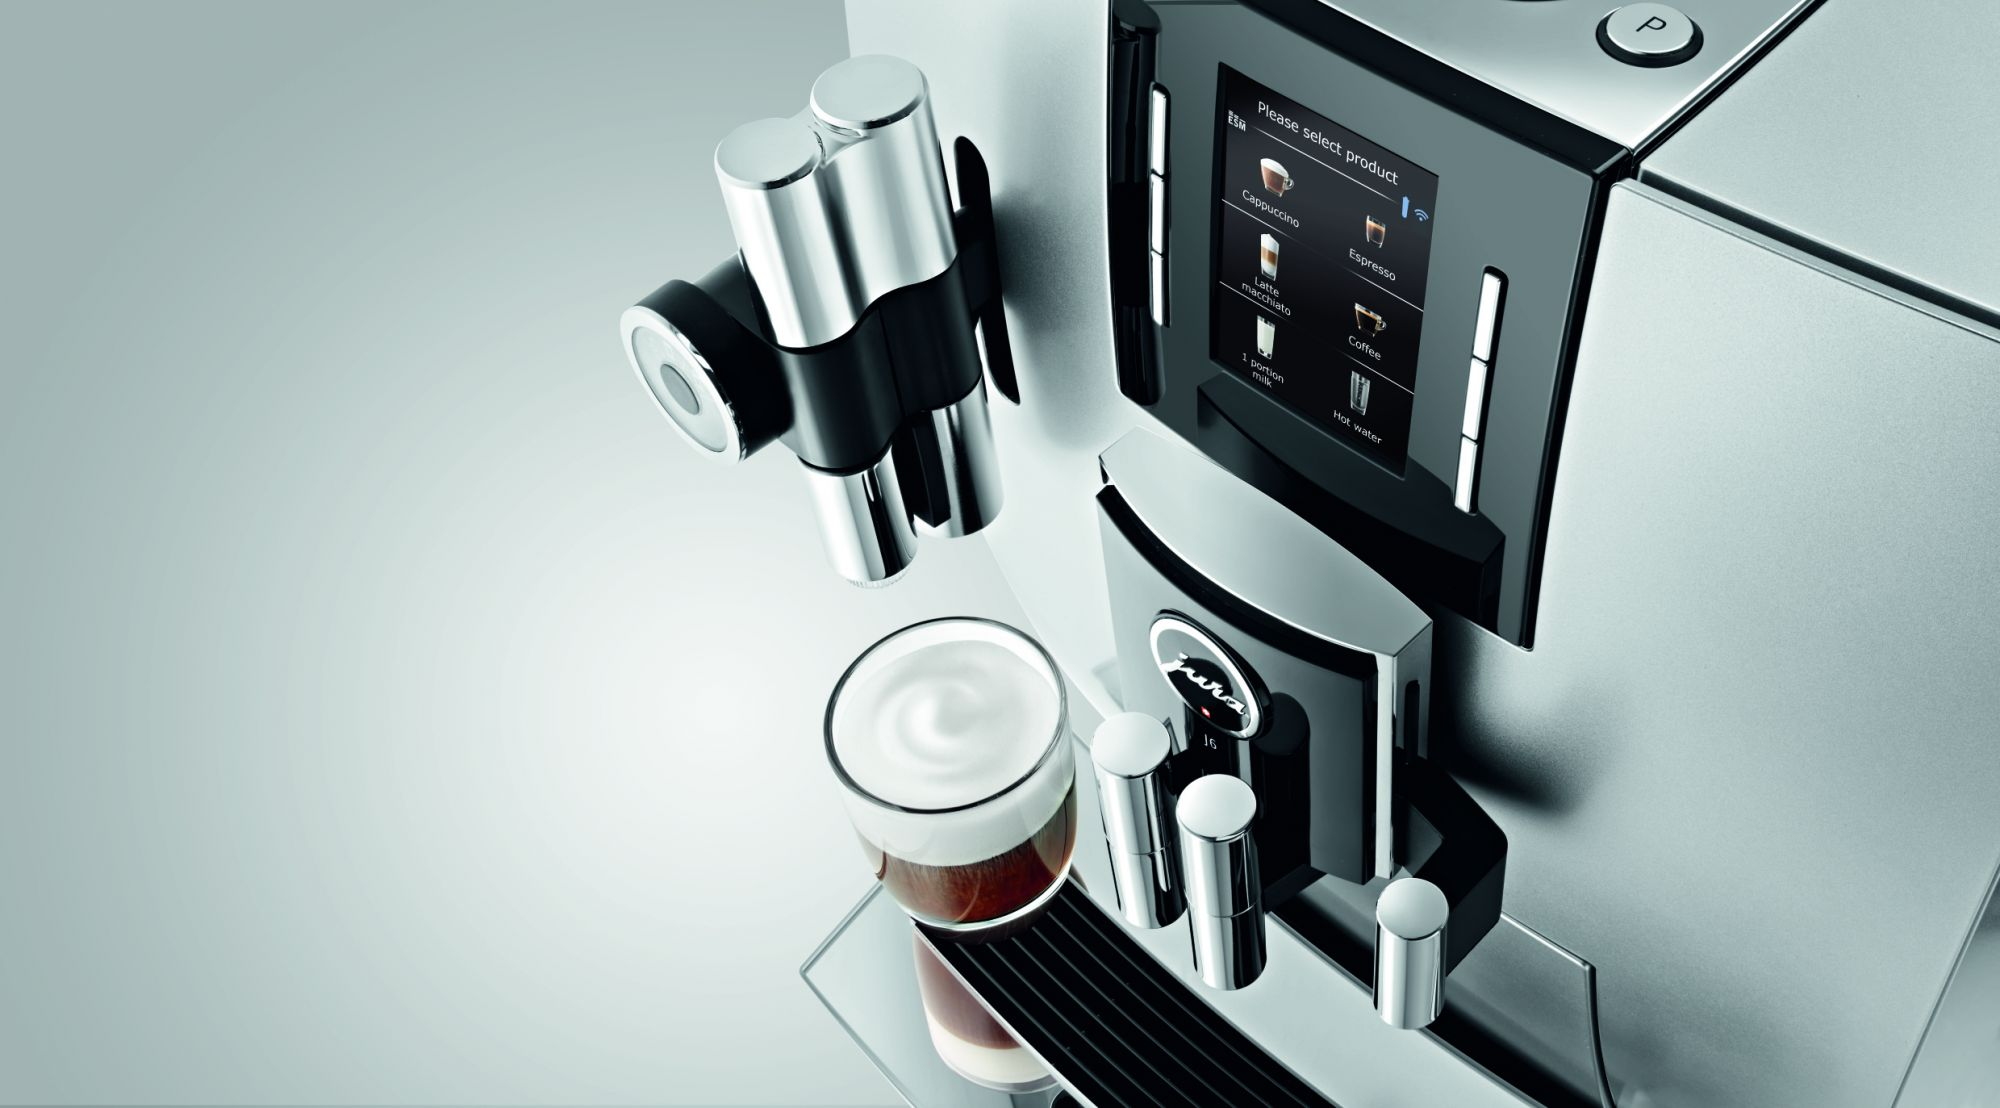 Be Your Own Barista With The JURA J6